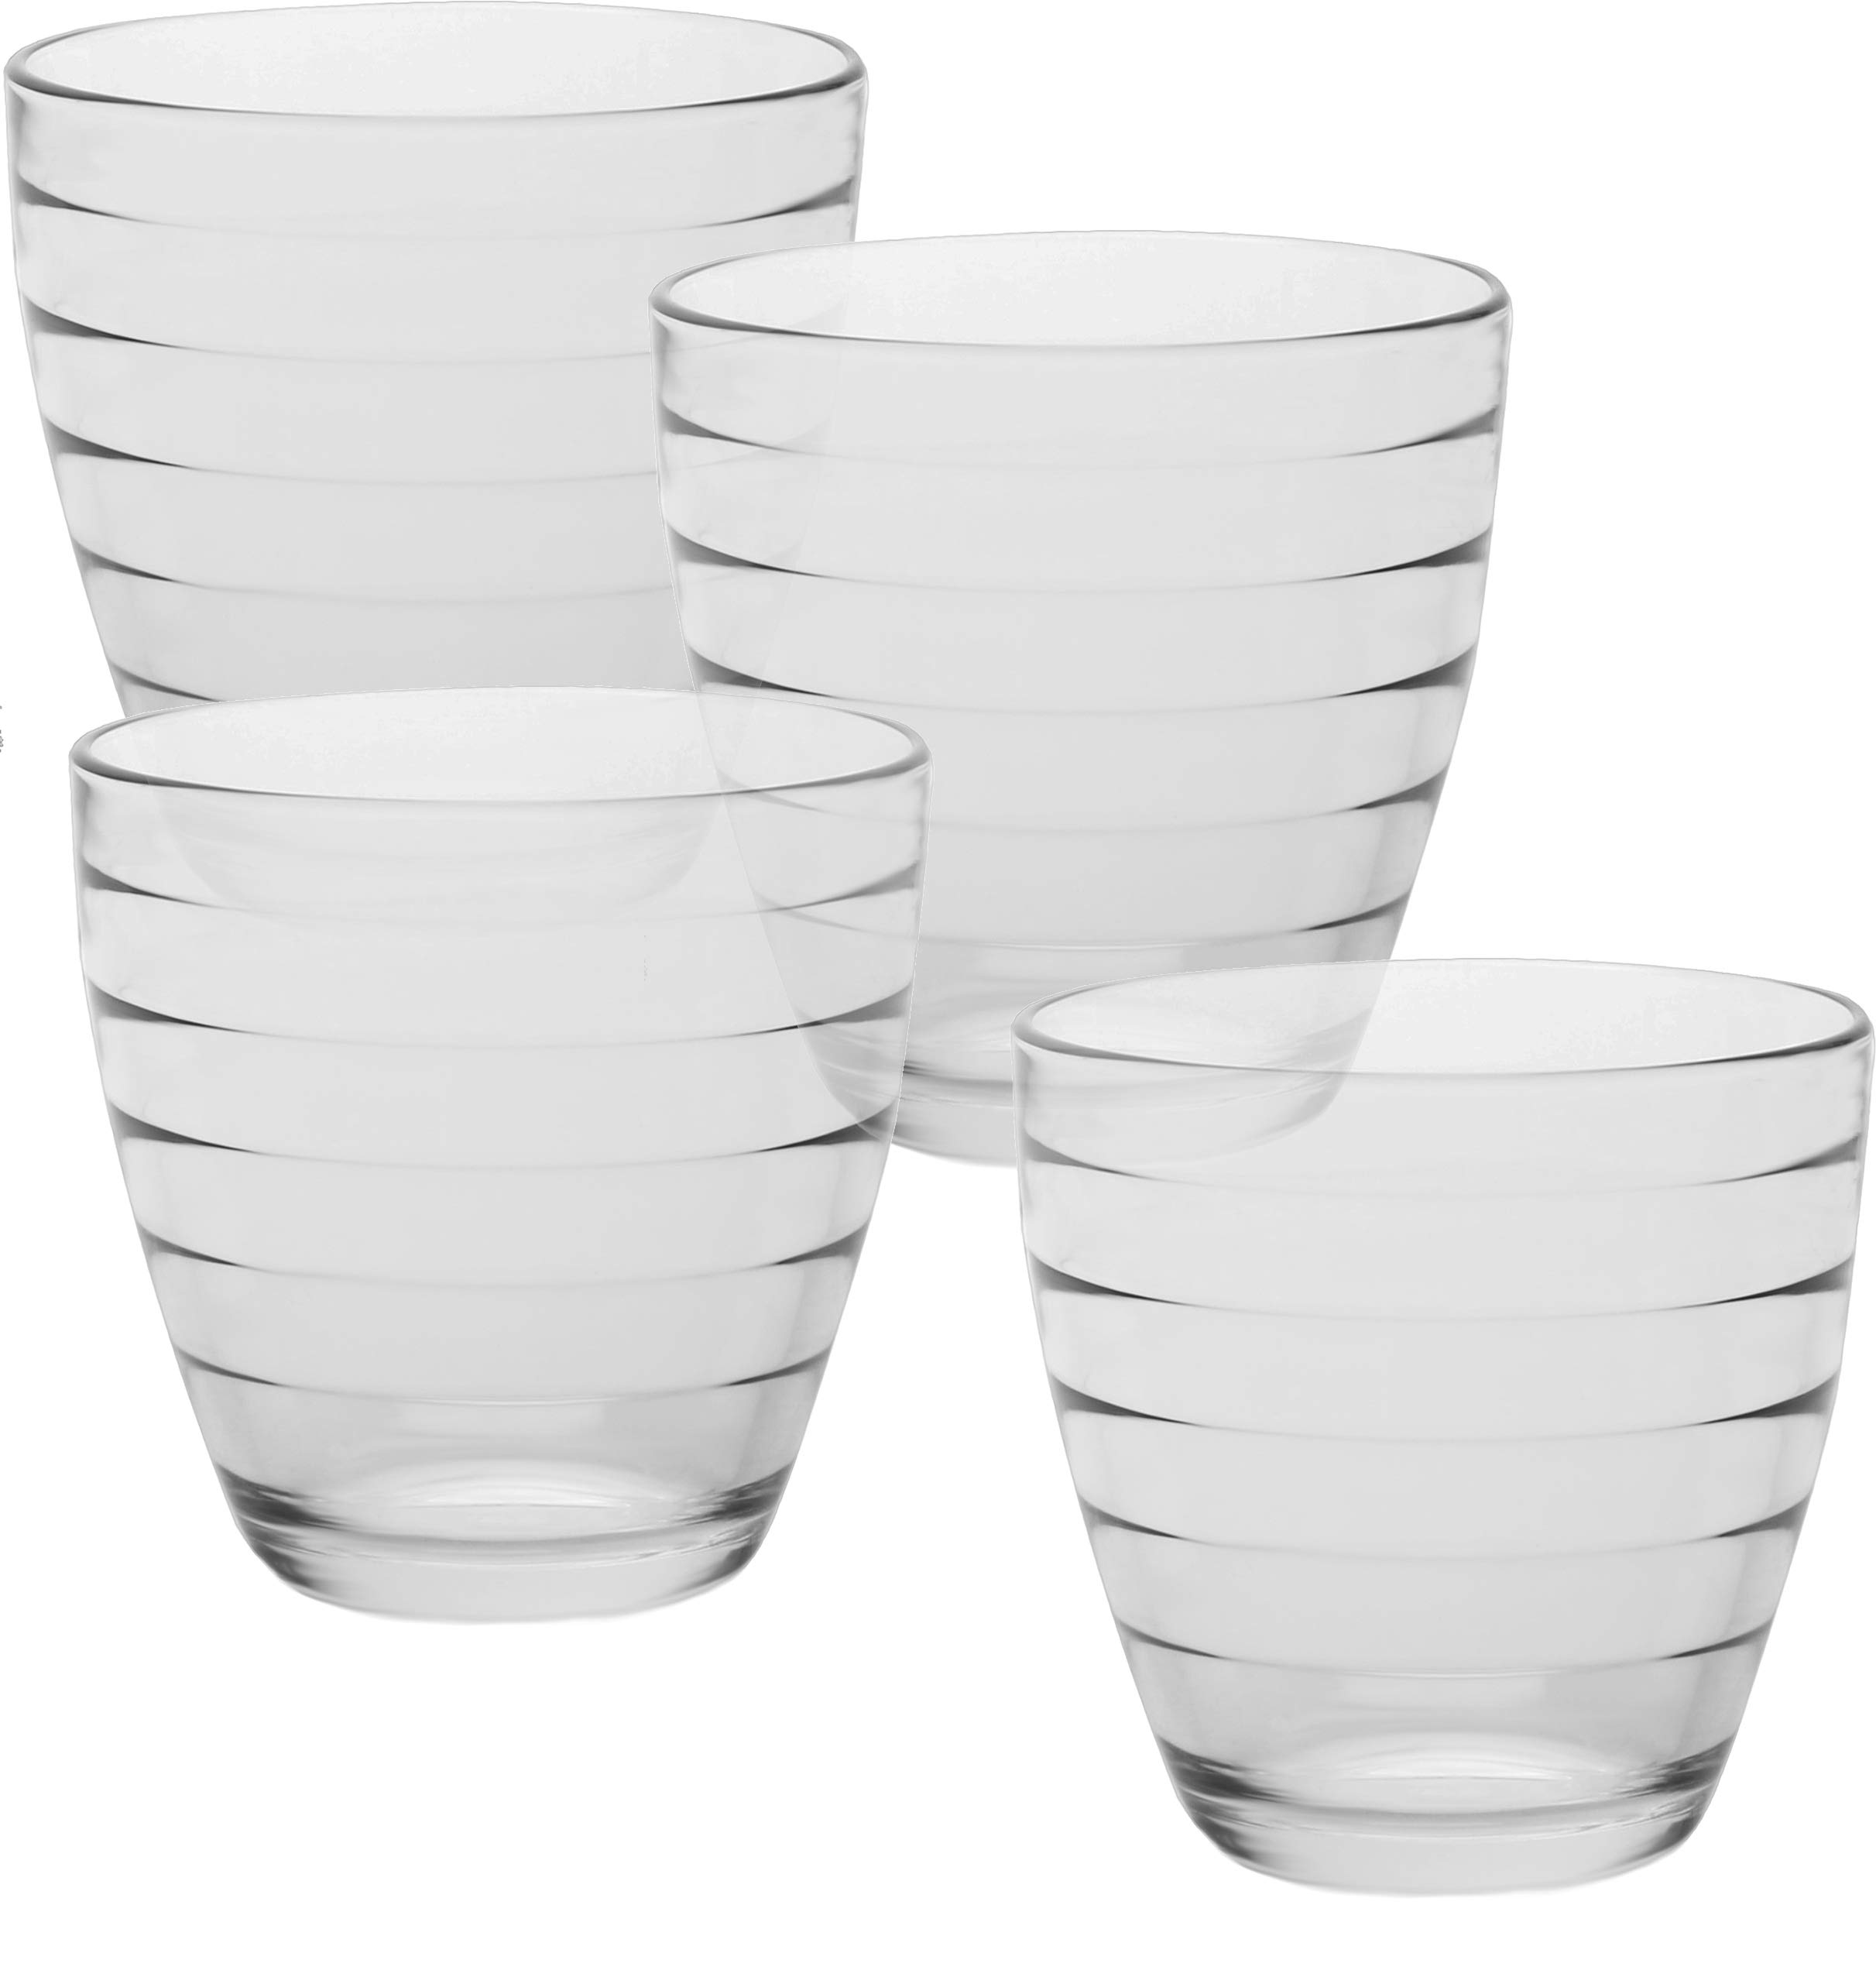 Circleware Ring Double Old Fashioned Whiskey Juice Drinking Glasses, Set of 4, 13 Ounce